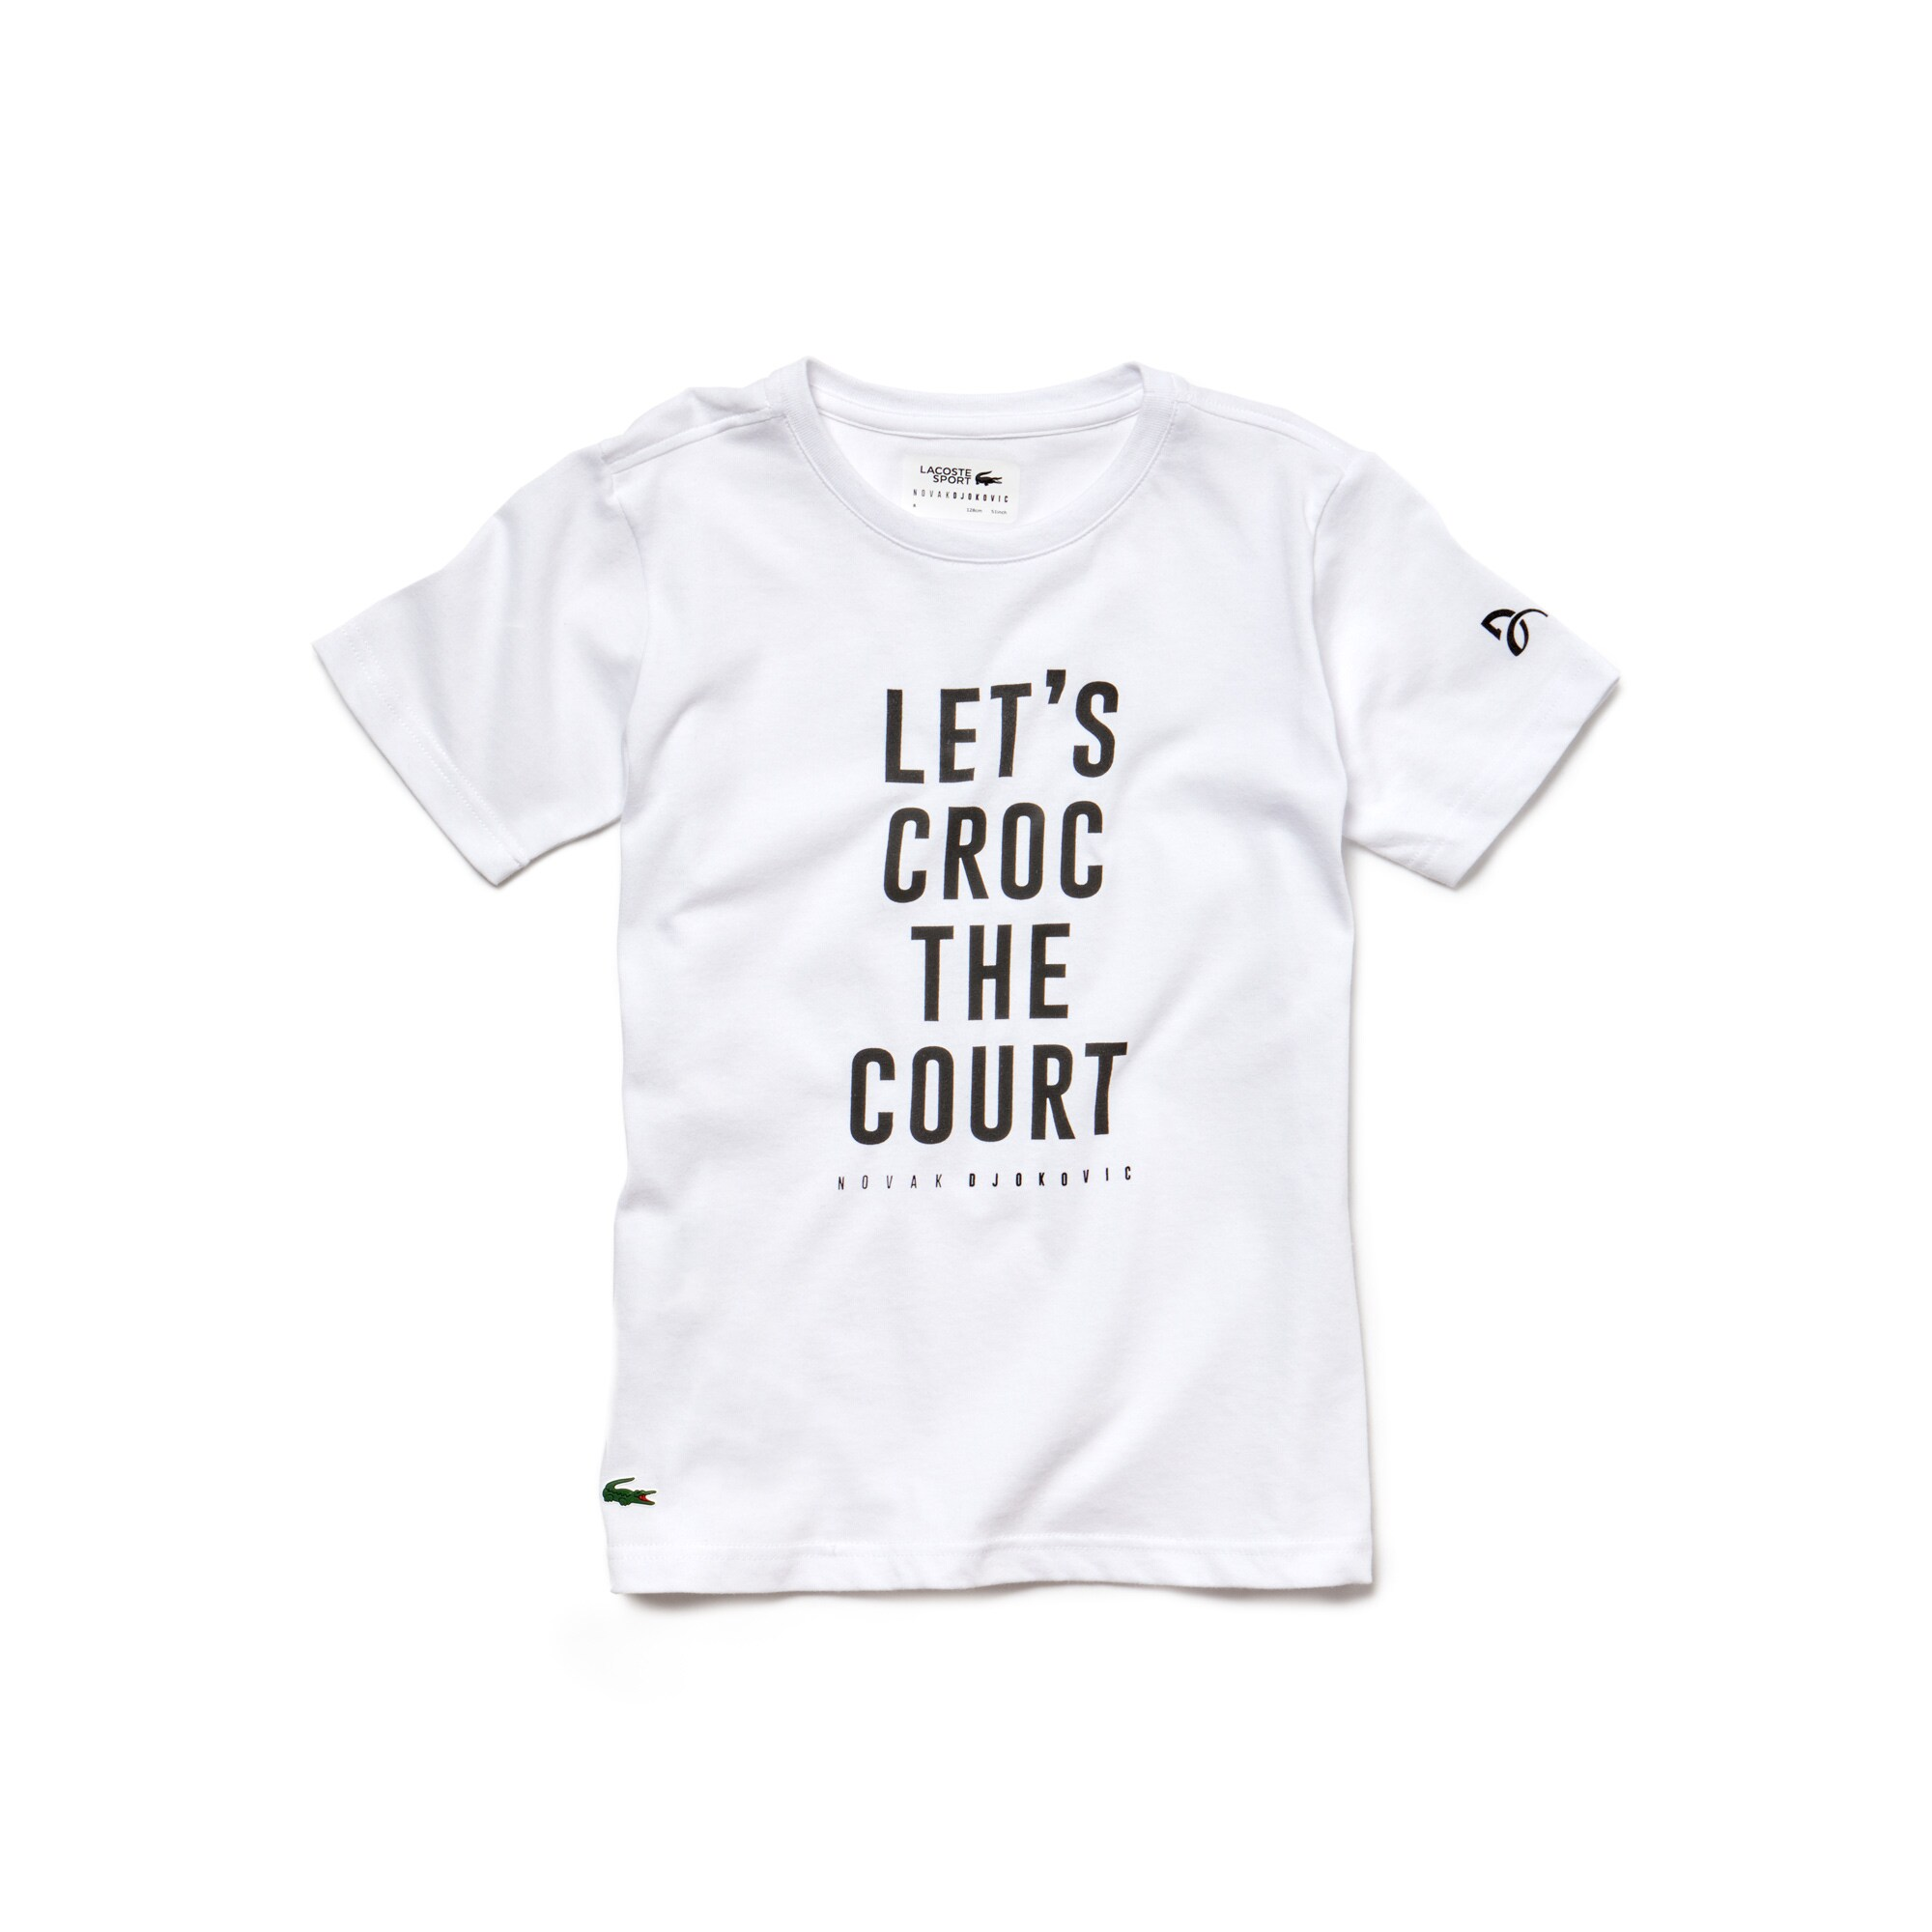 Lacoste - Camiseta De Niño Lacoste SPORT Novak Djokovic Support With Style -Off Court Collection En Tejido De Punto Técnico Con Inscripción - 1